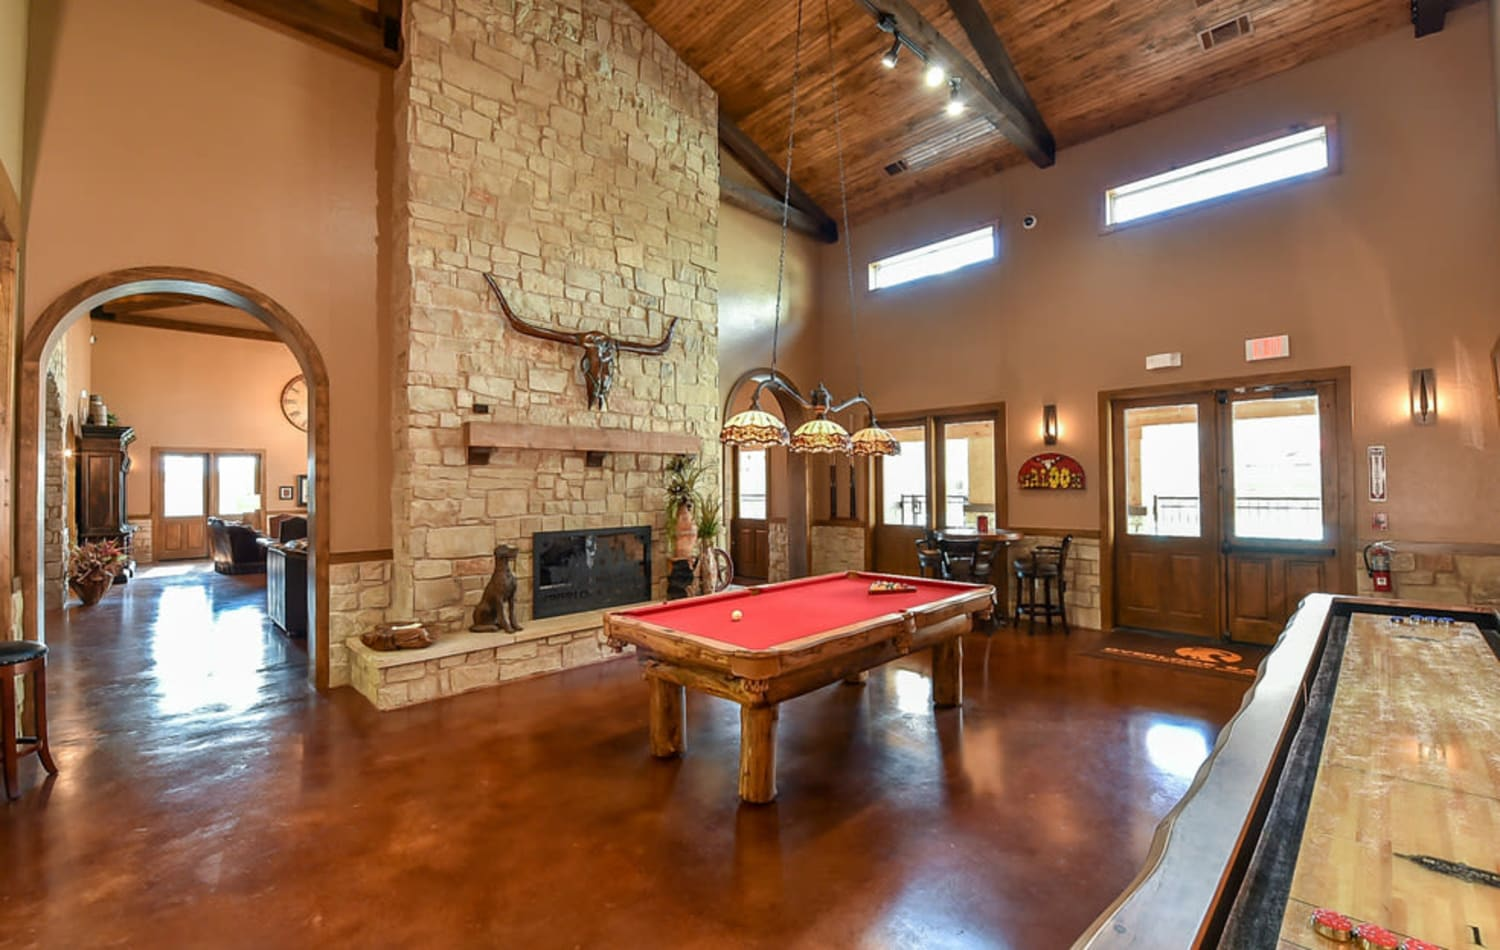 The clubhouse with pool table at Overlook Ranch in Fort Worth, Texas